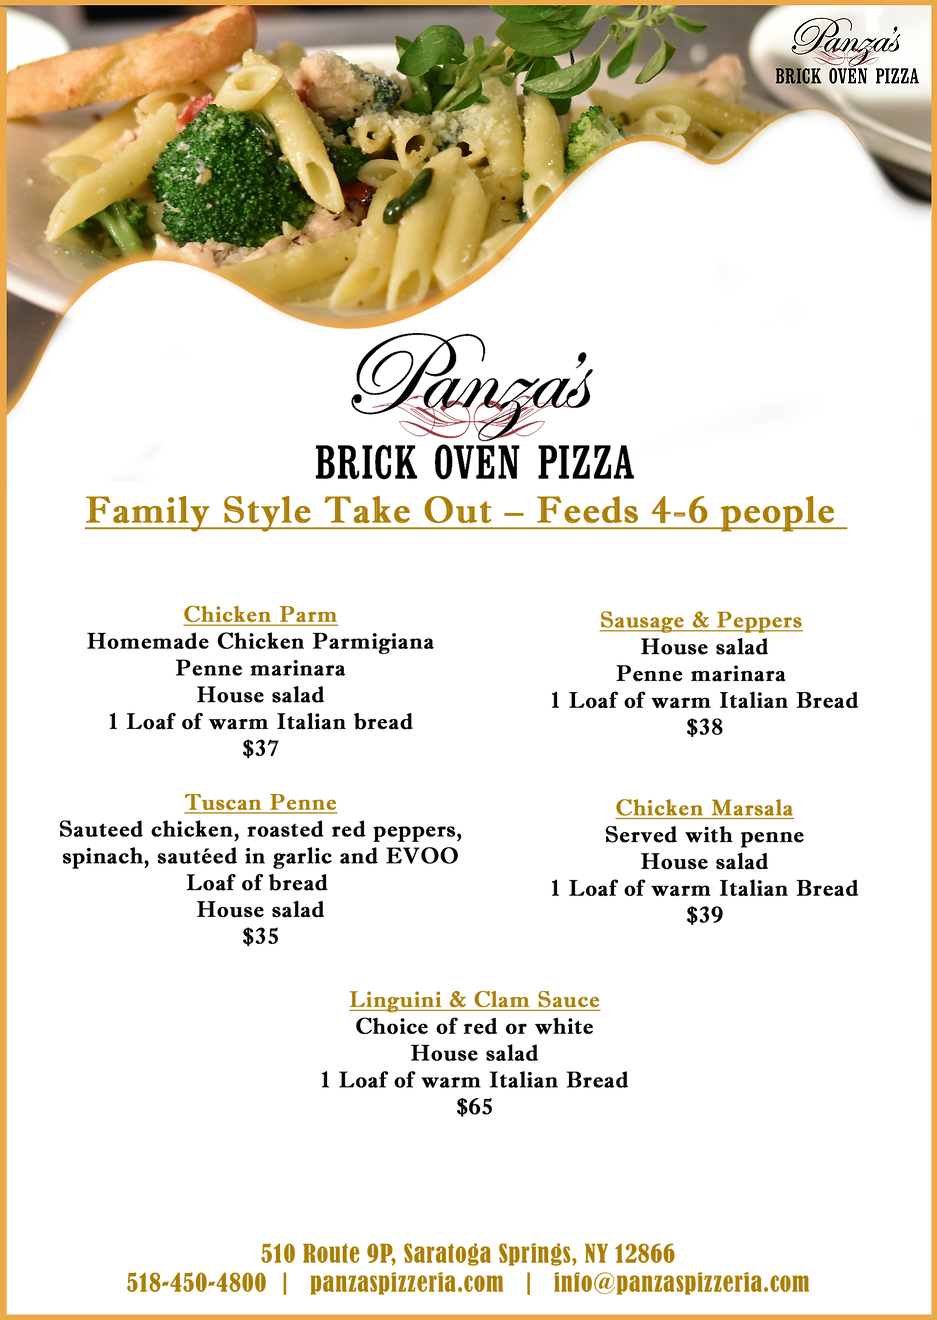 large take out orders 12-23-2020.png